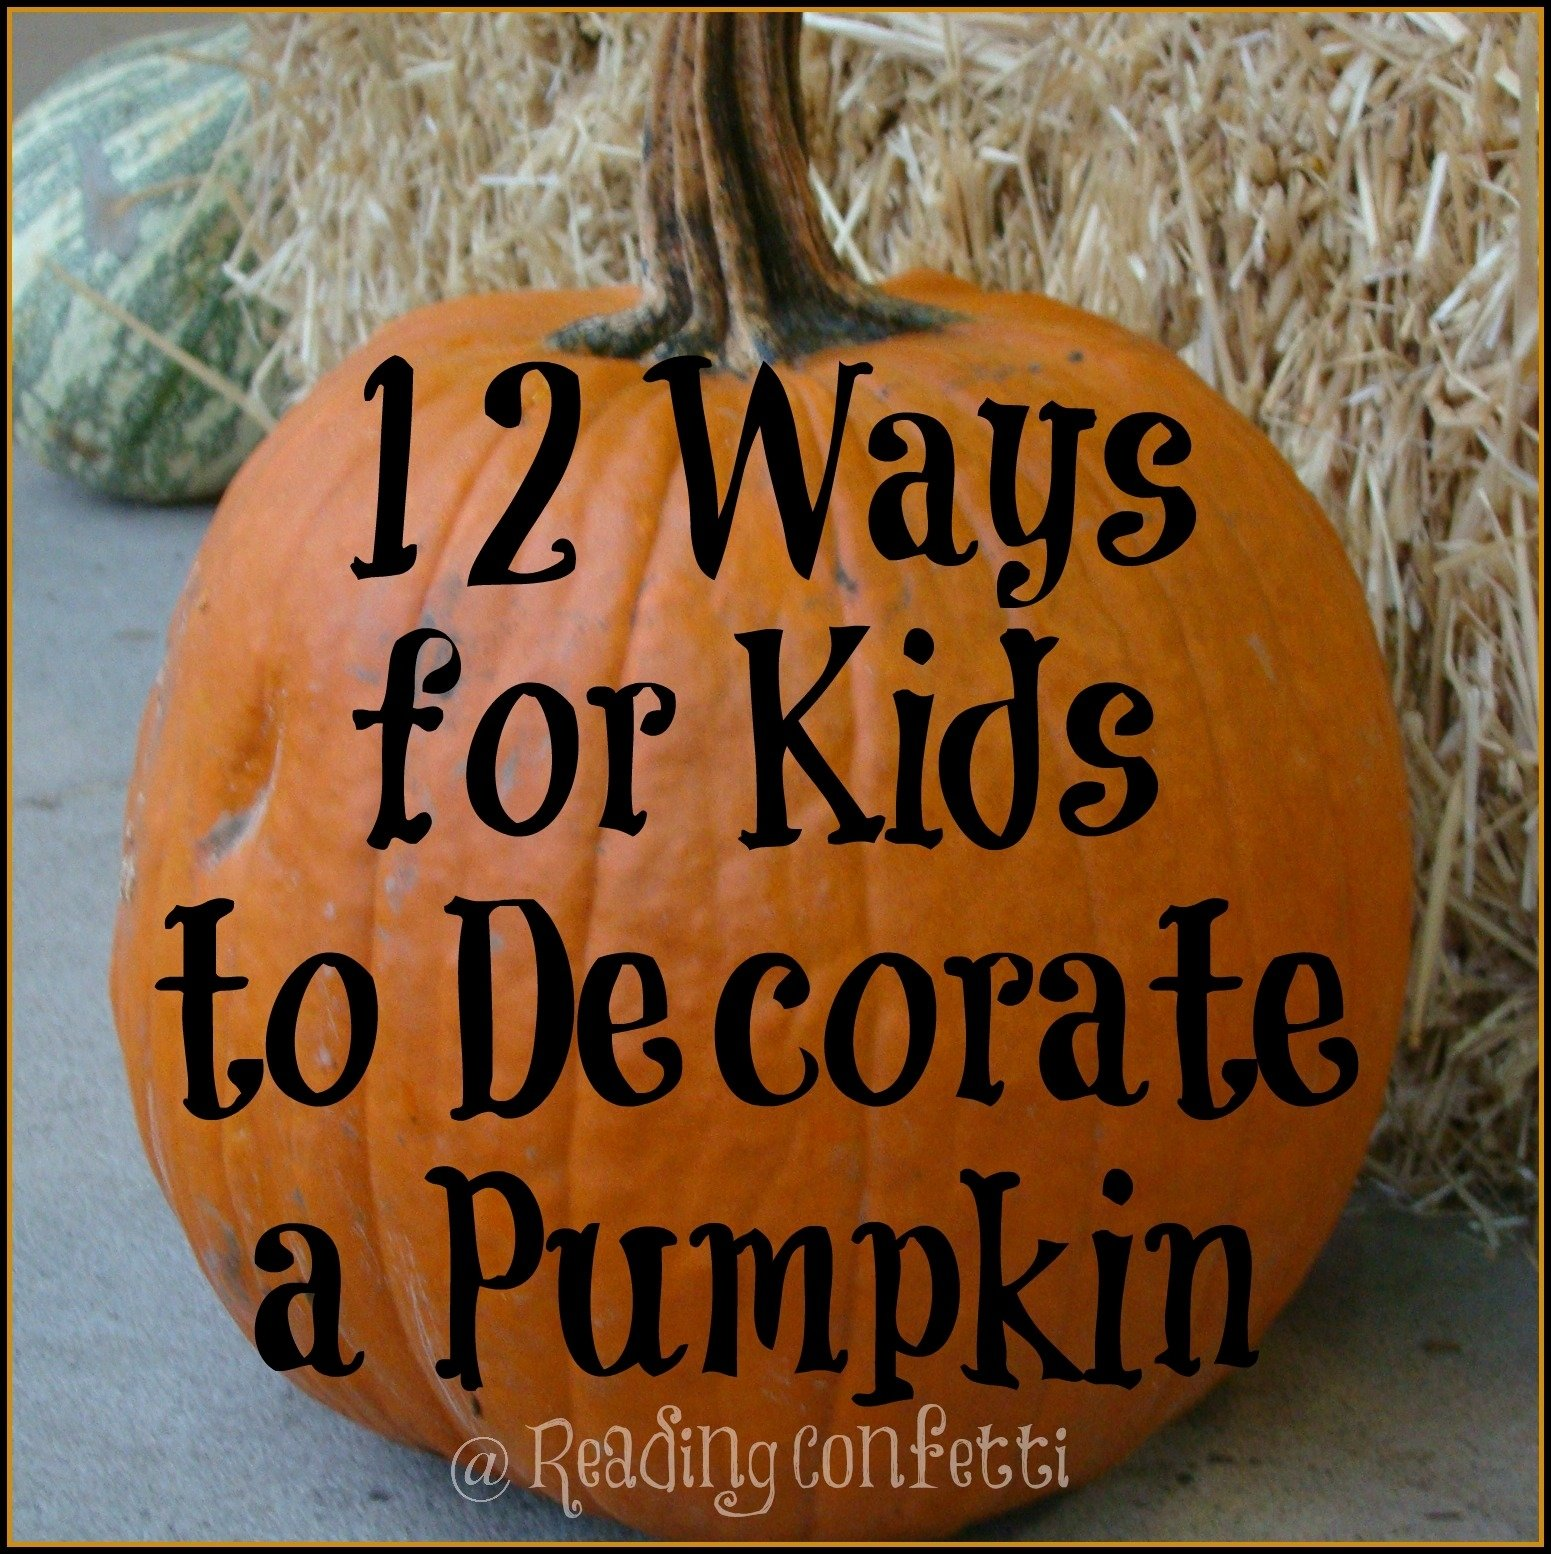 10 Most Recommended Pumpkin Decorating Ideas For Kids 12 ways to decorate halloween pumpkins kids co op reading confetti 2020